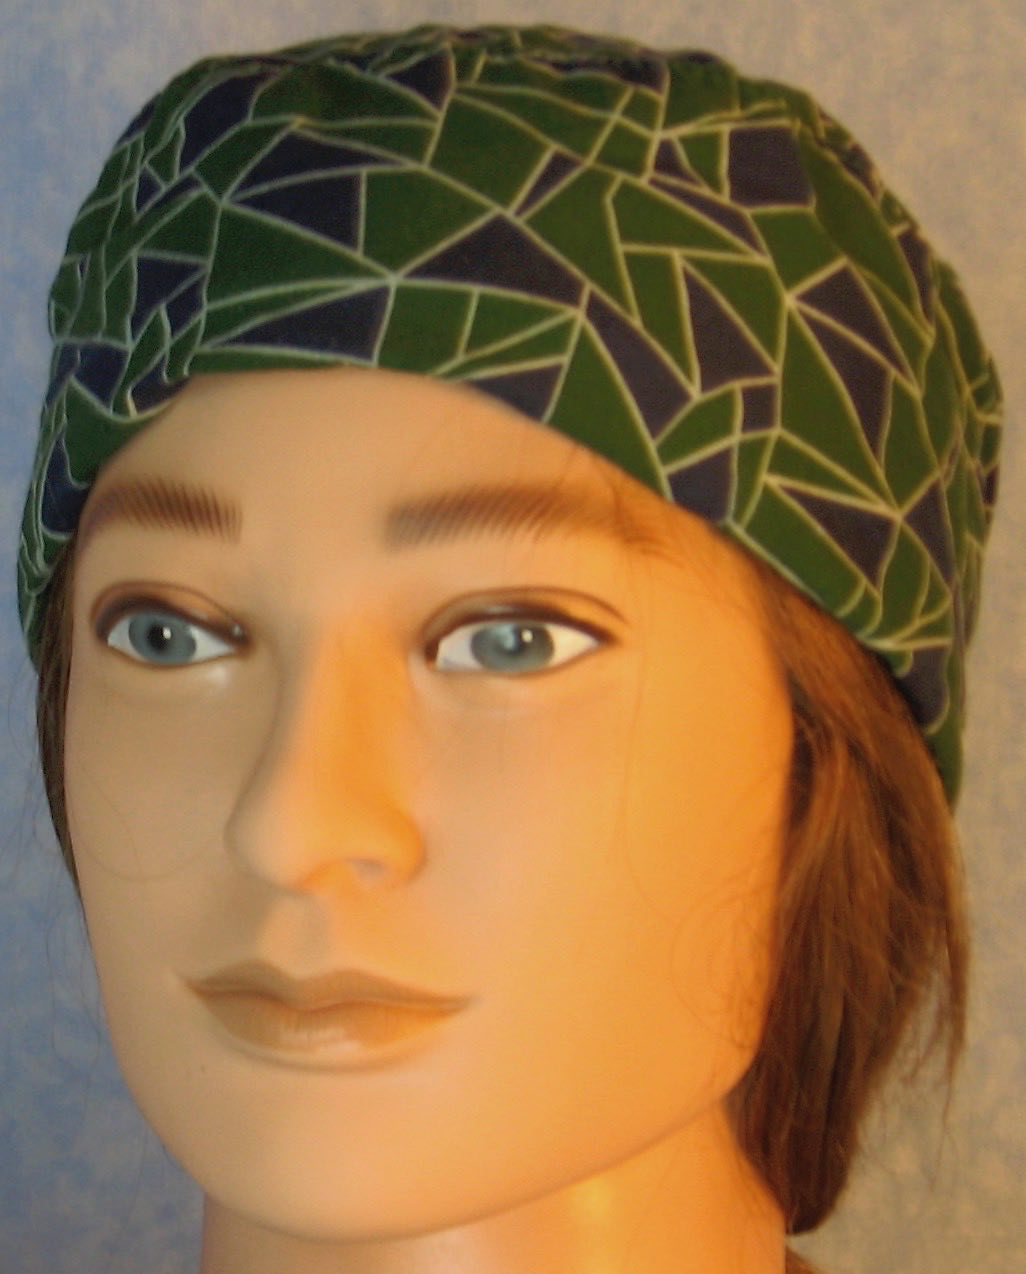 Skull Cap-Green Navy Geometric Triangles with White Outline-Adult L